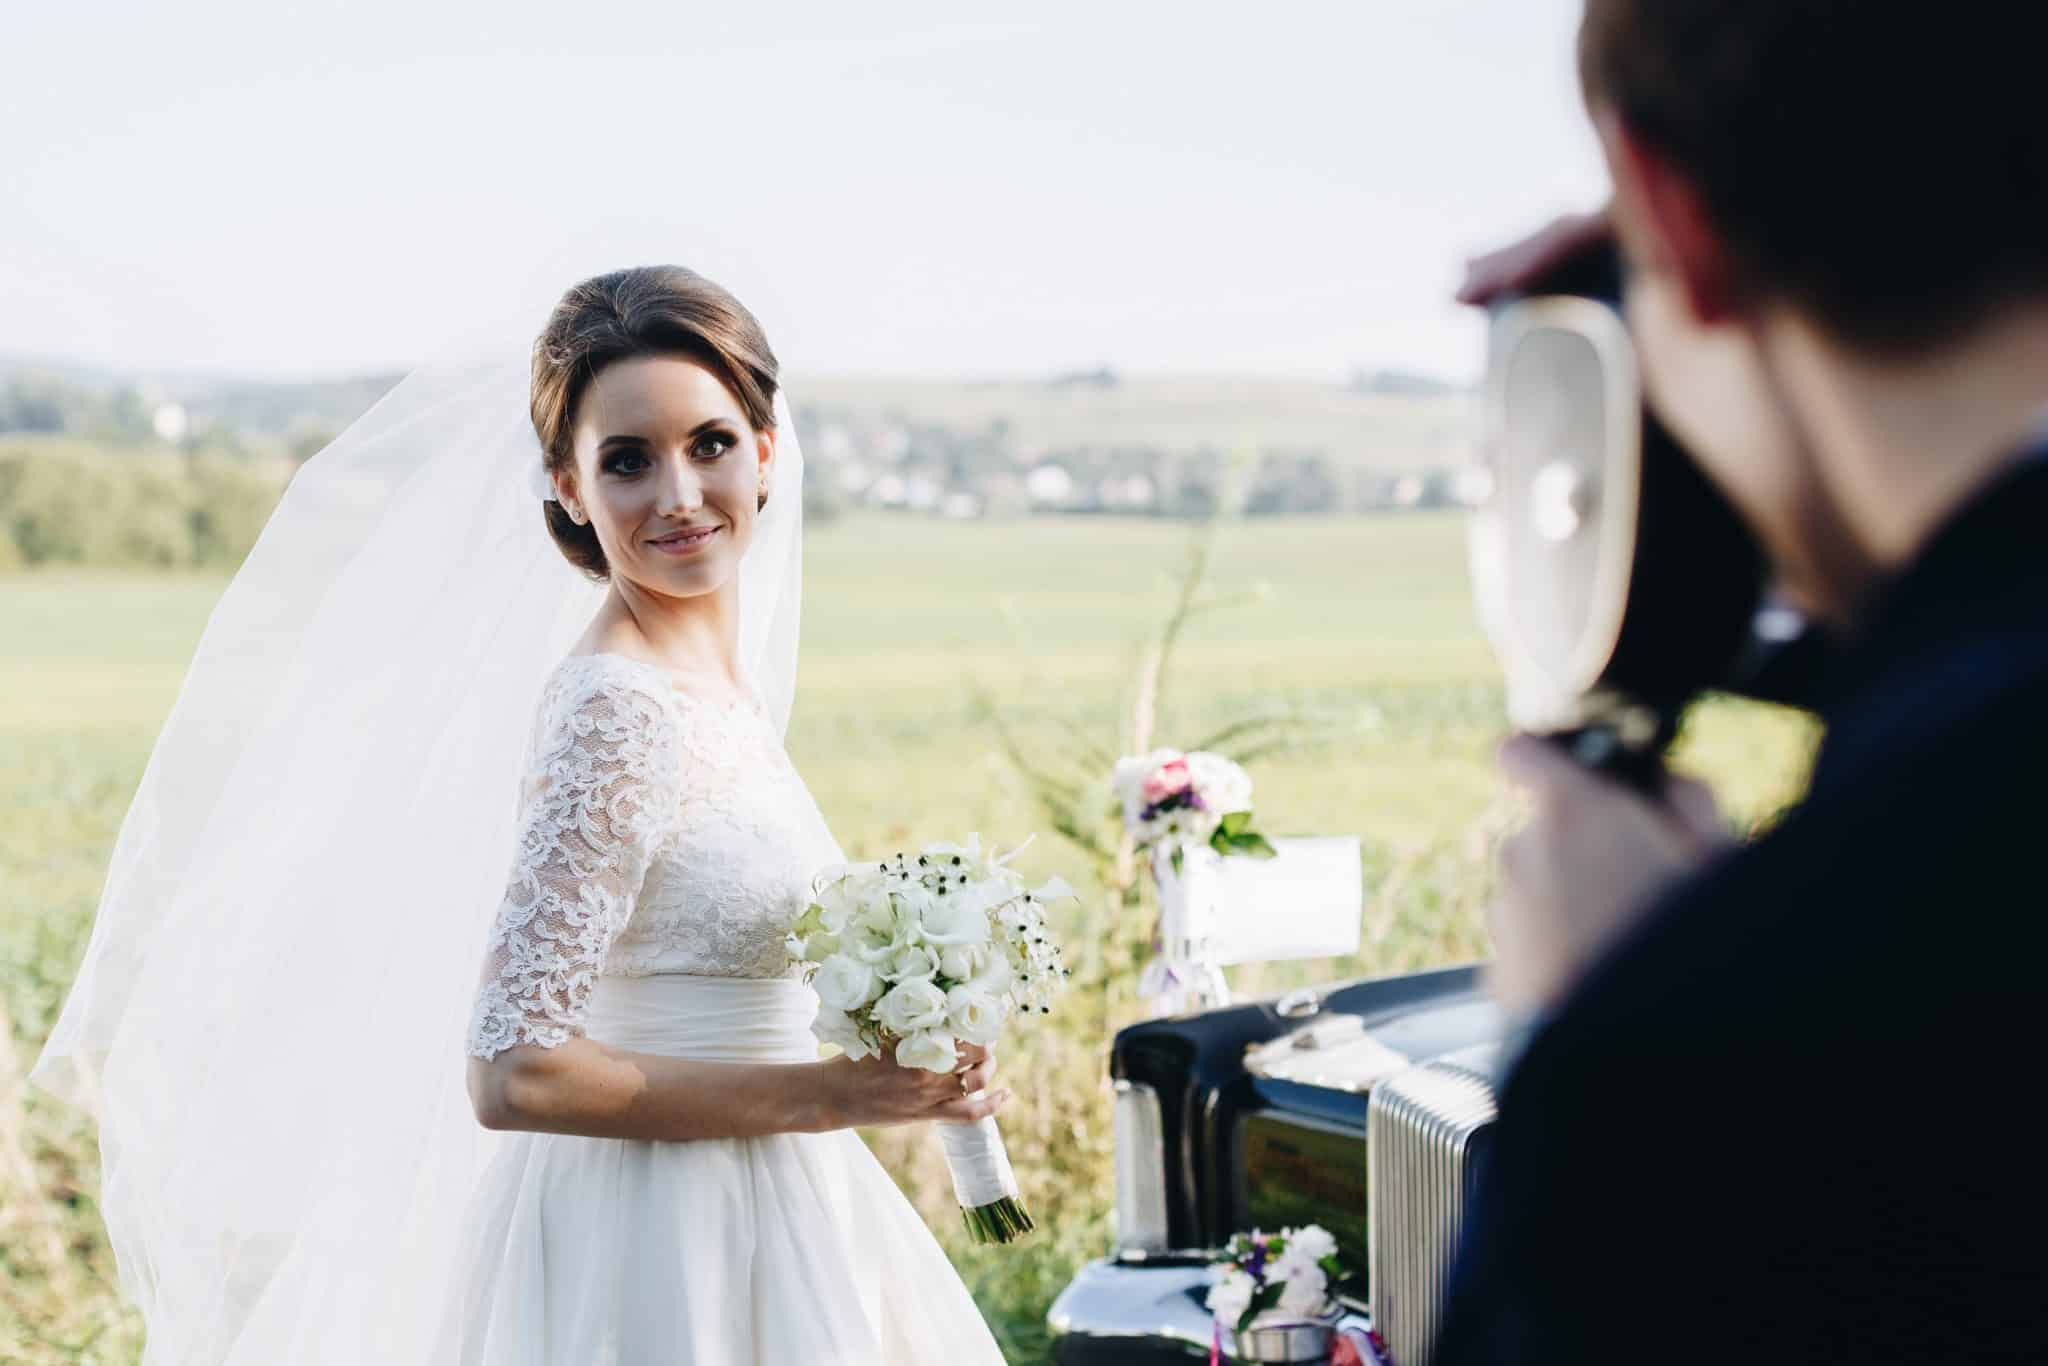 Weddings are back with boom time for photographers